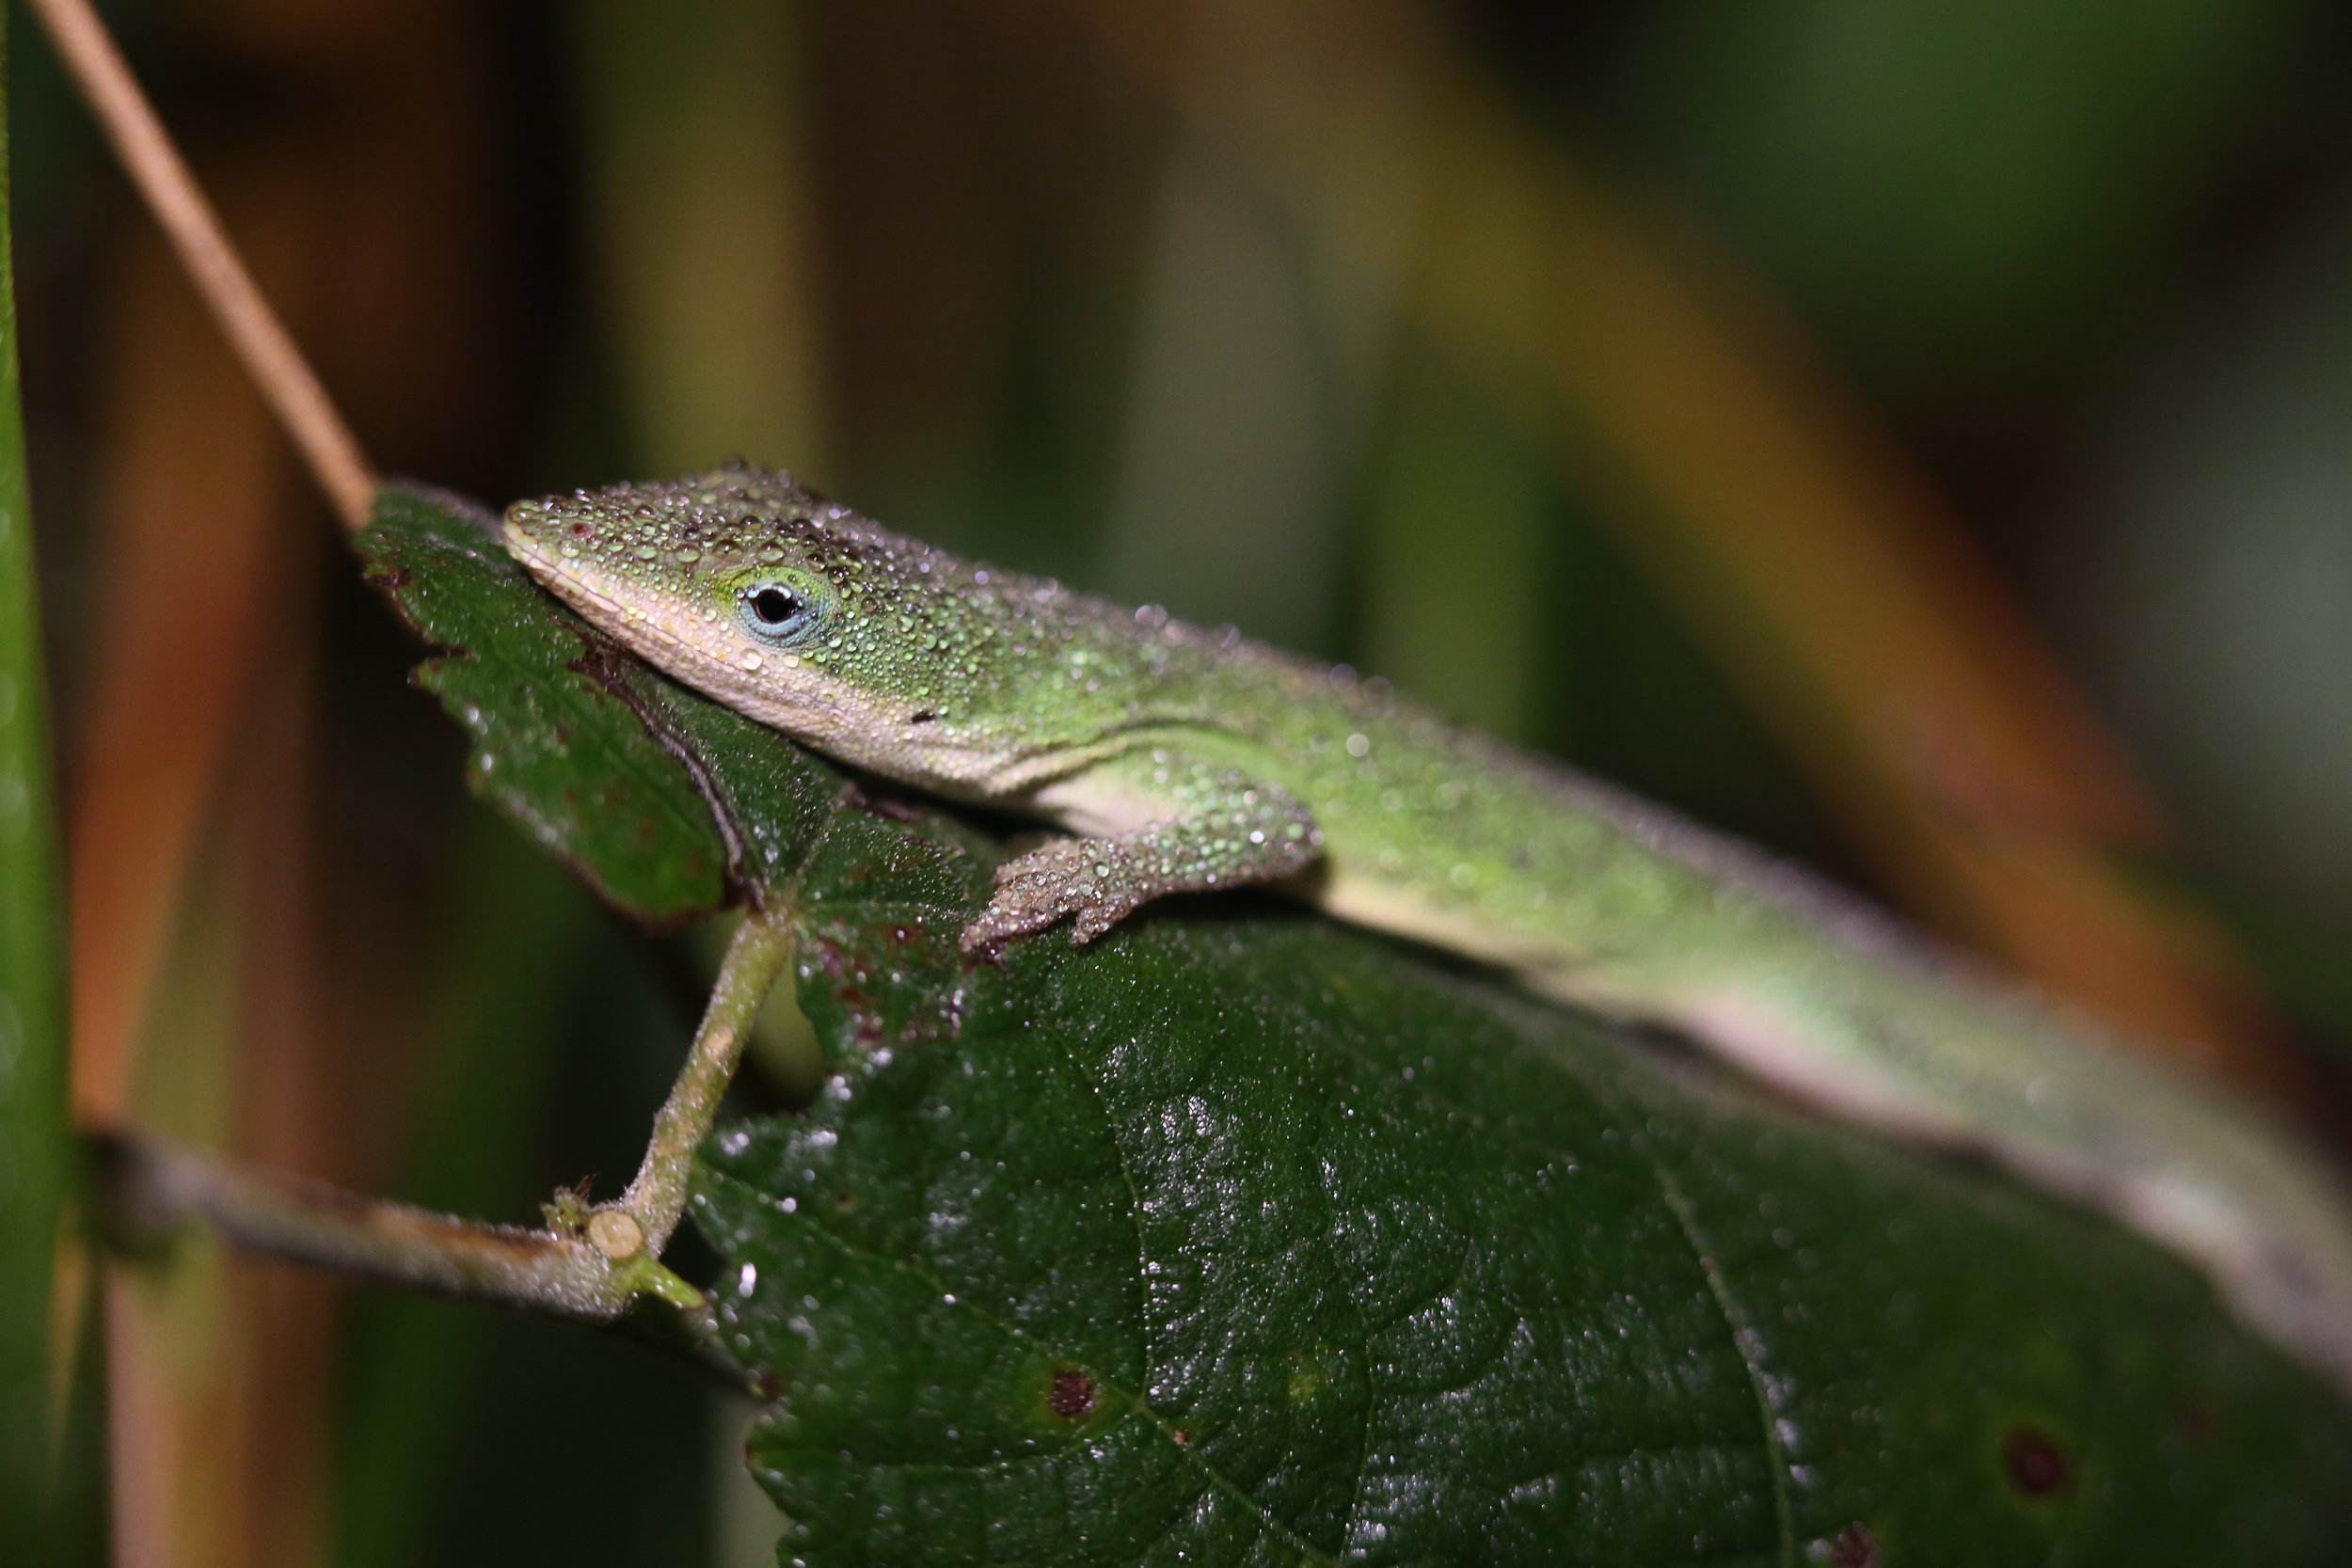 KD1A4859 Green Anole Aransas NWR Dec 2015 1 (3).jpg